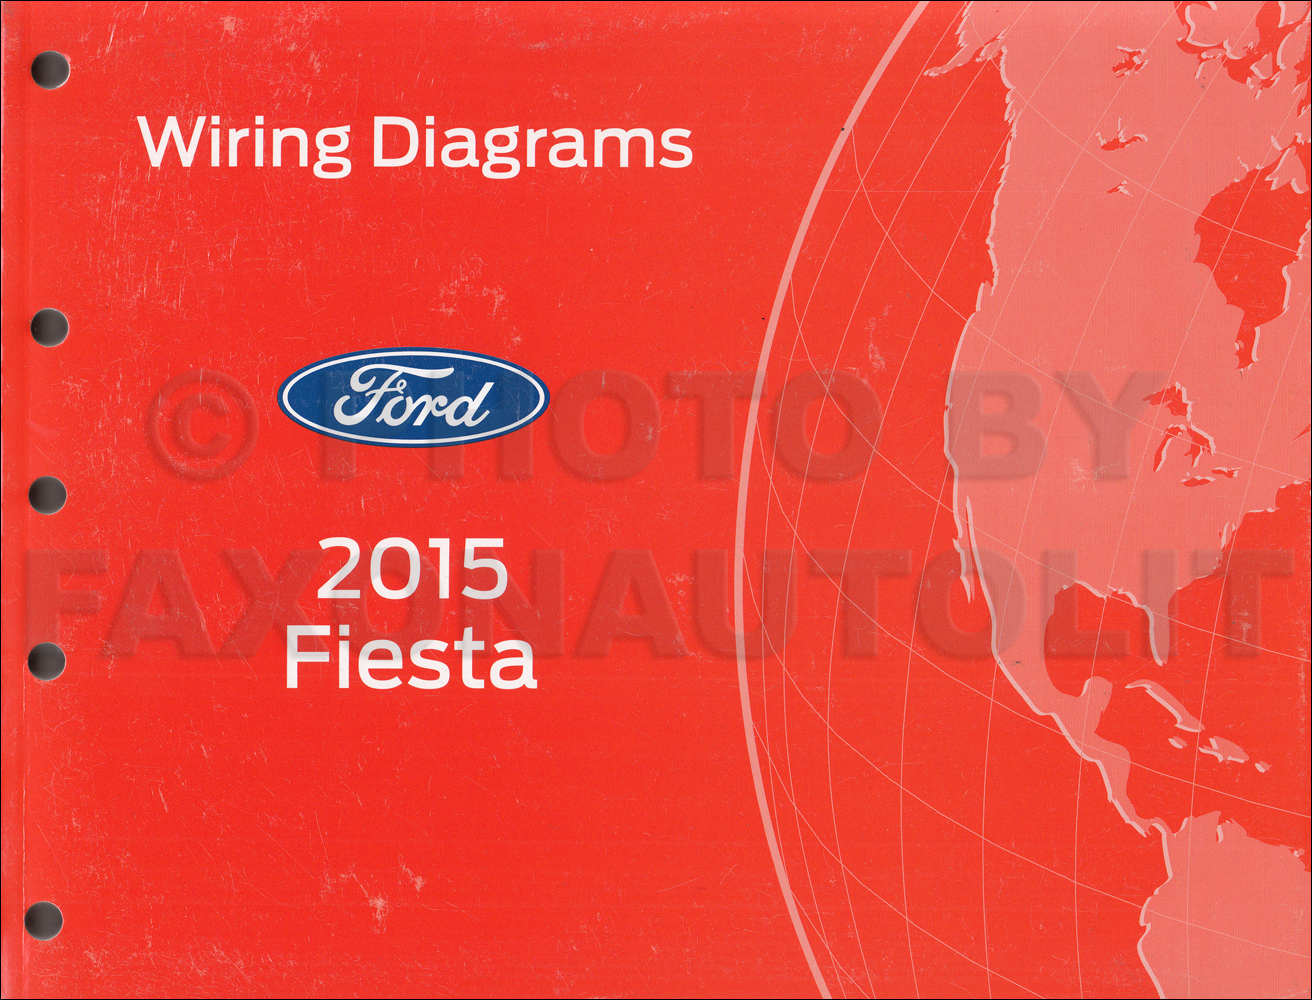 2011 ford fiesta wiring diagram detailed schematics diagram rh jvpacks com